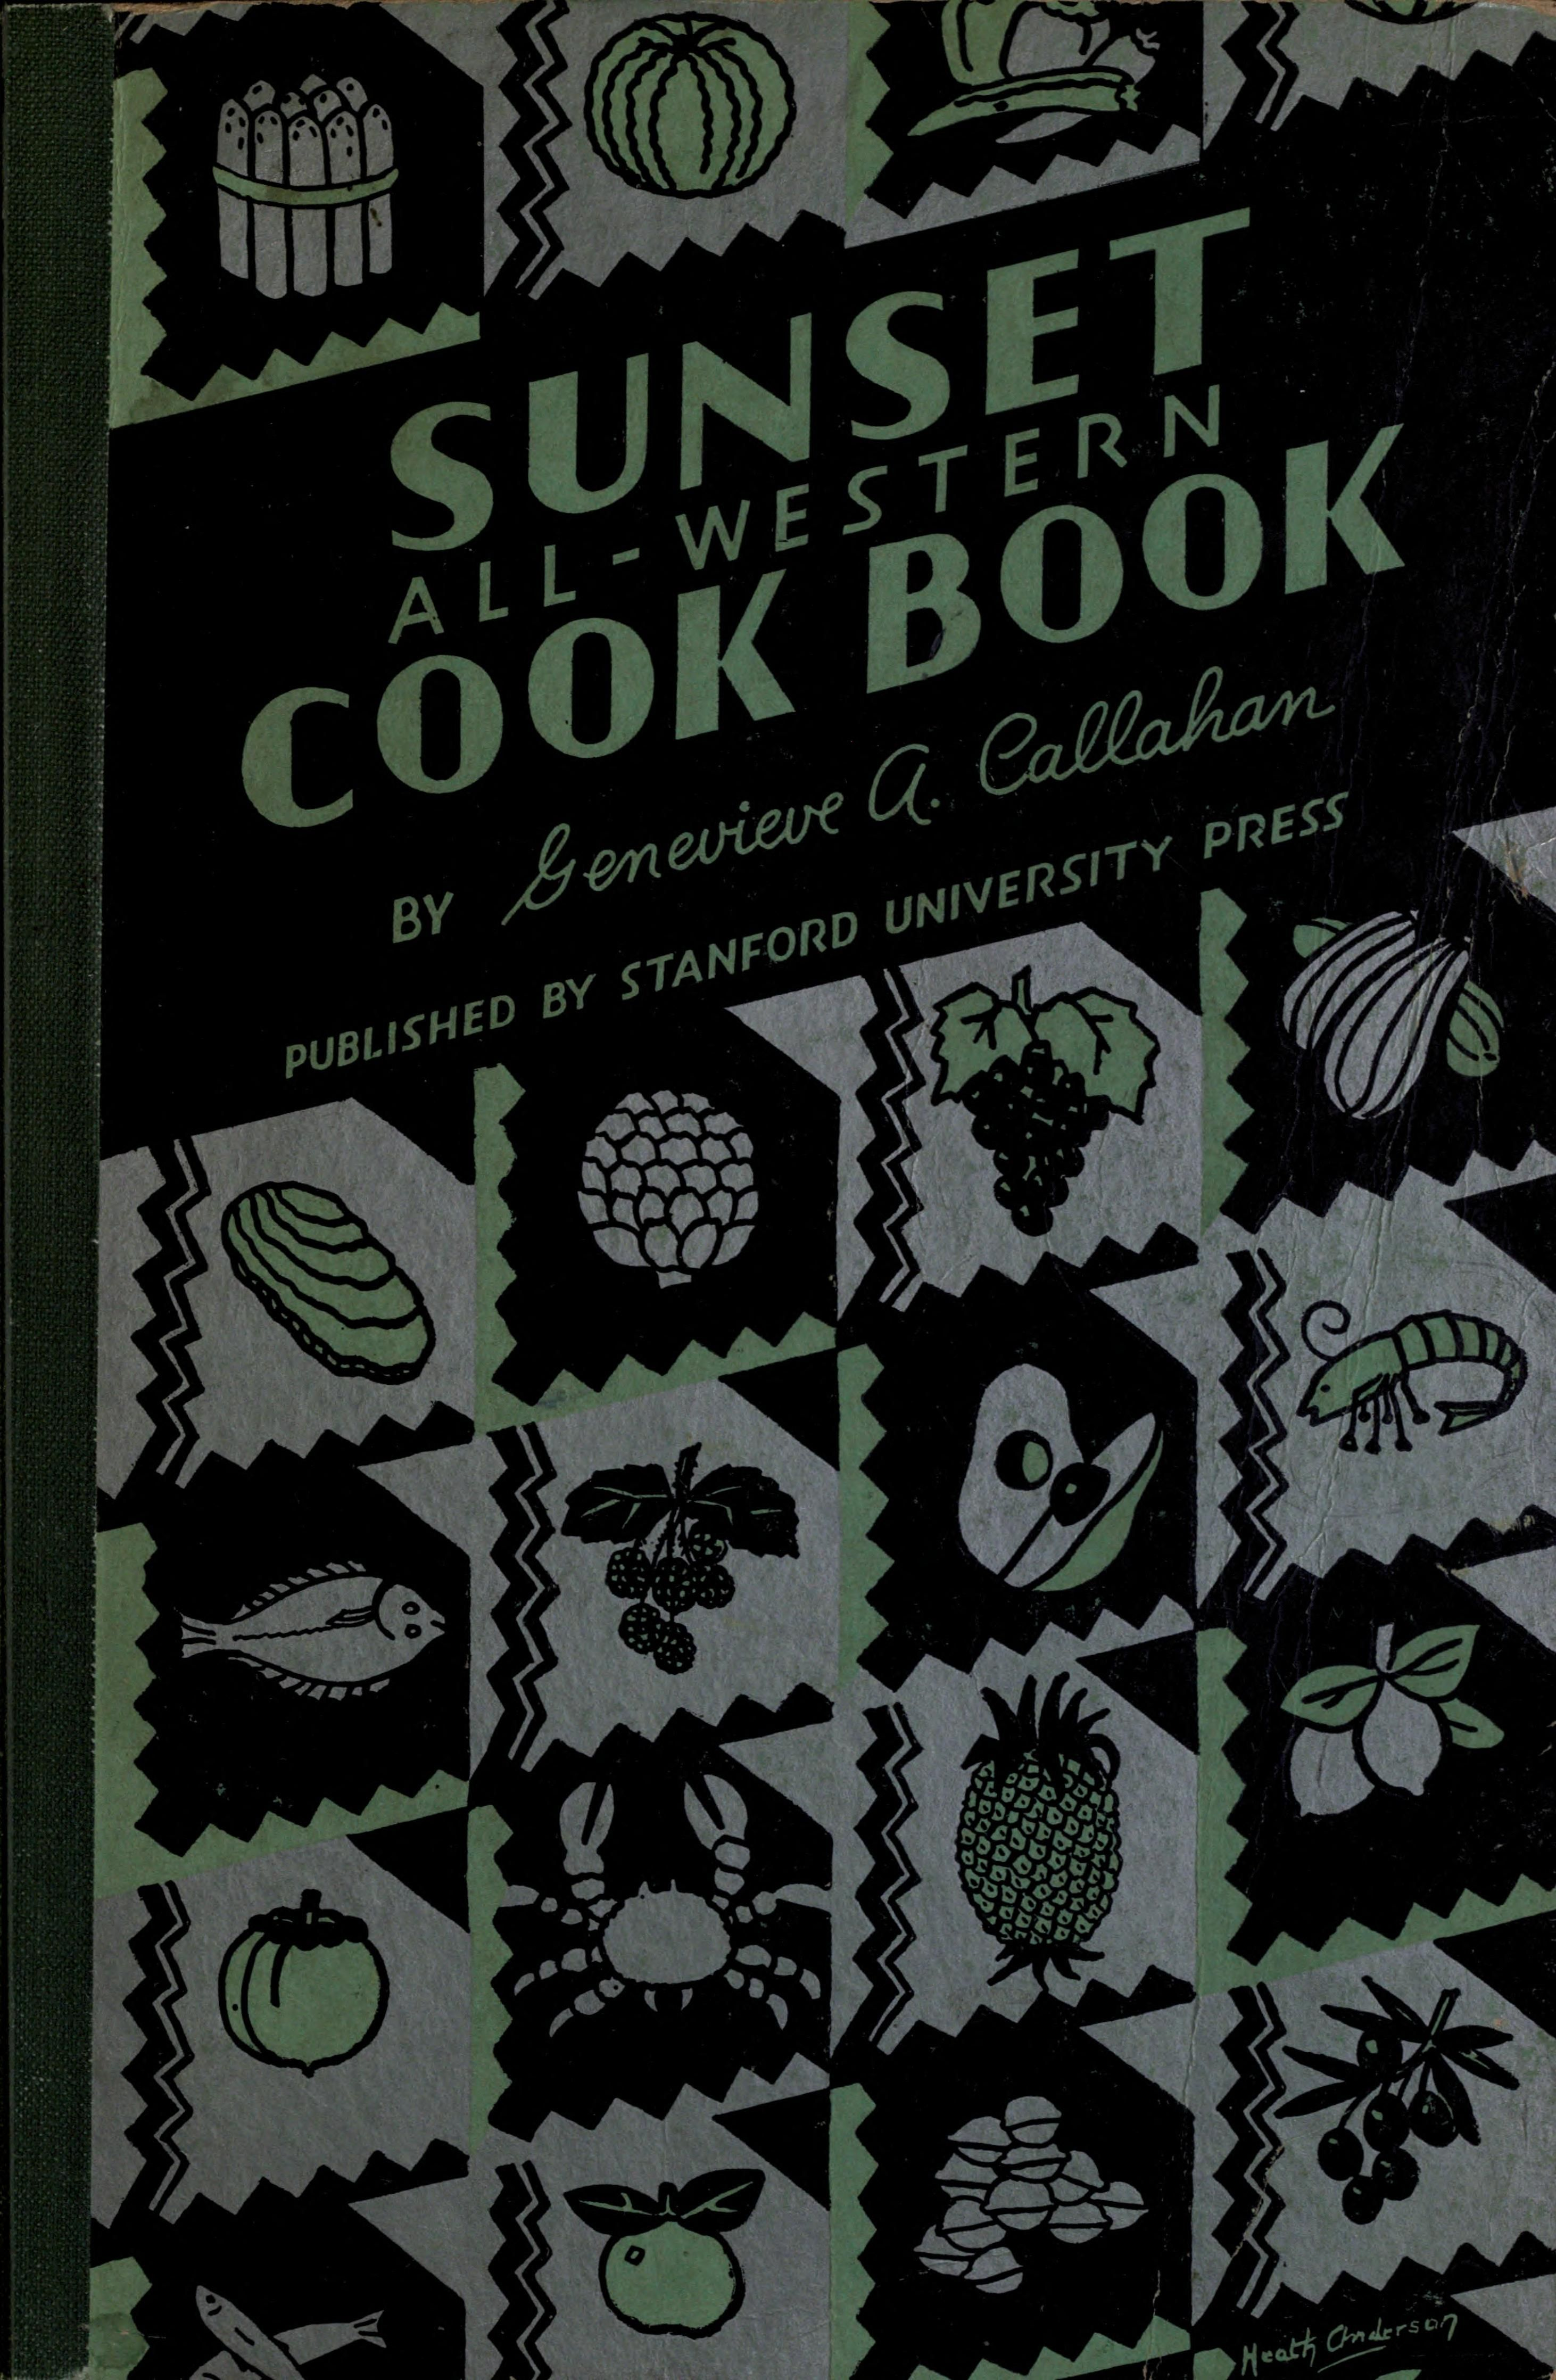 Sunset all western cook book by genevieve anne callahan 1933 sunset all western cook book how to select prepare cook and serve all typically western food products forumfinder Images